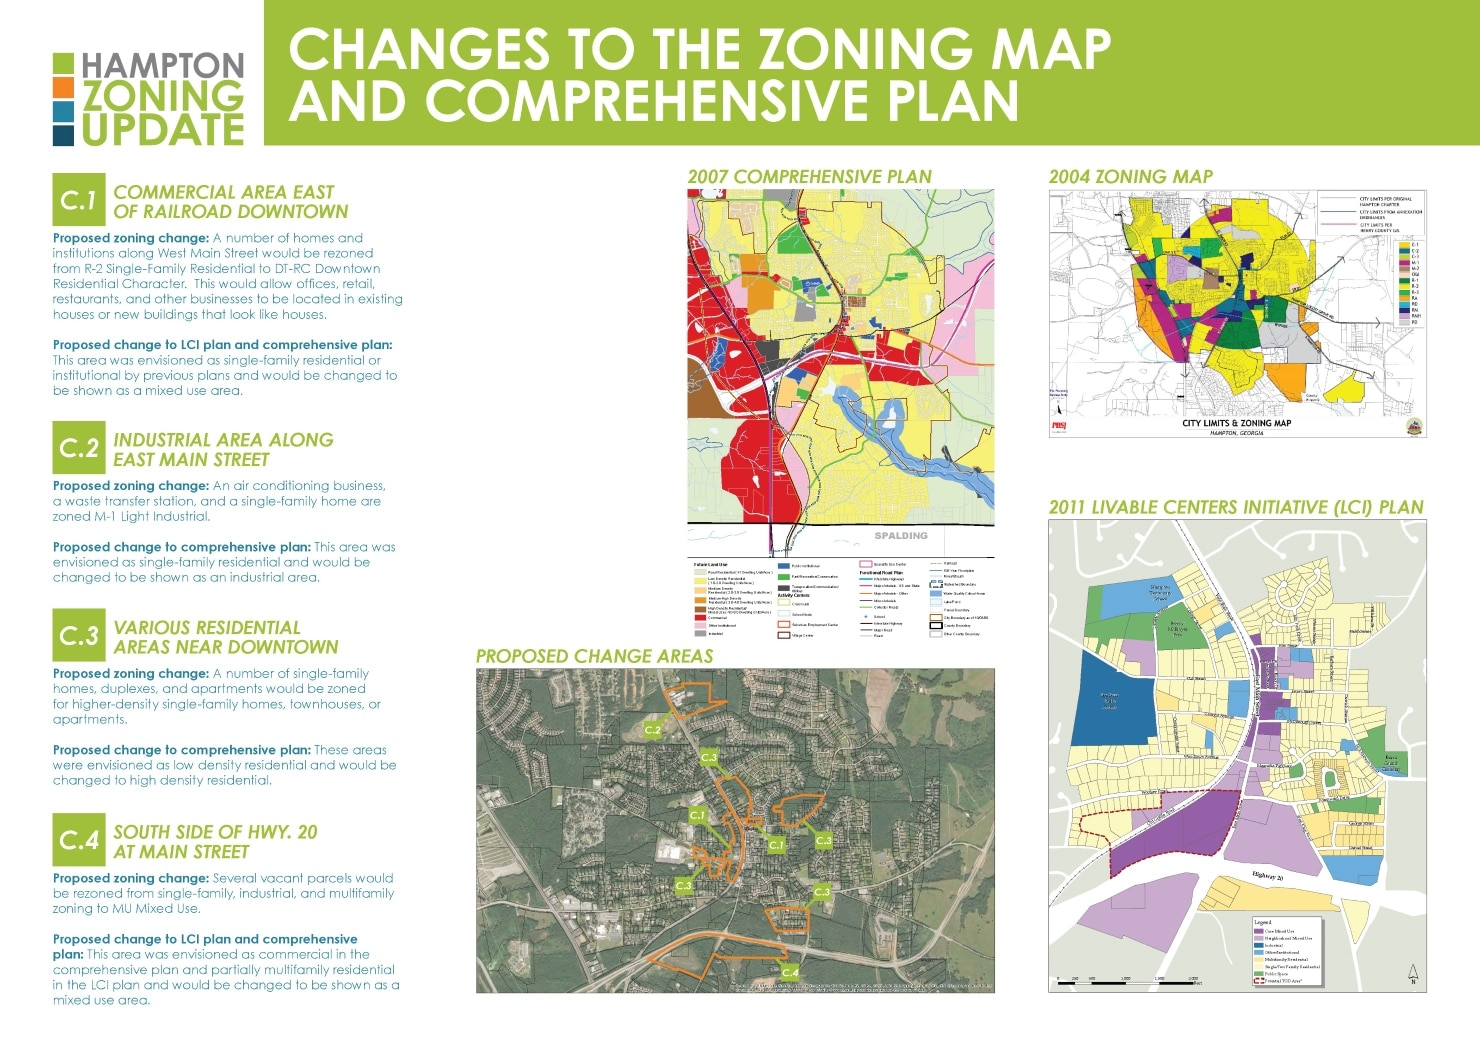 TSW Hampton-Zoning-Update-11 City of Hampton Zoning Update    TSW